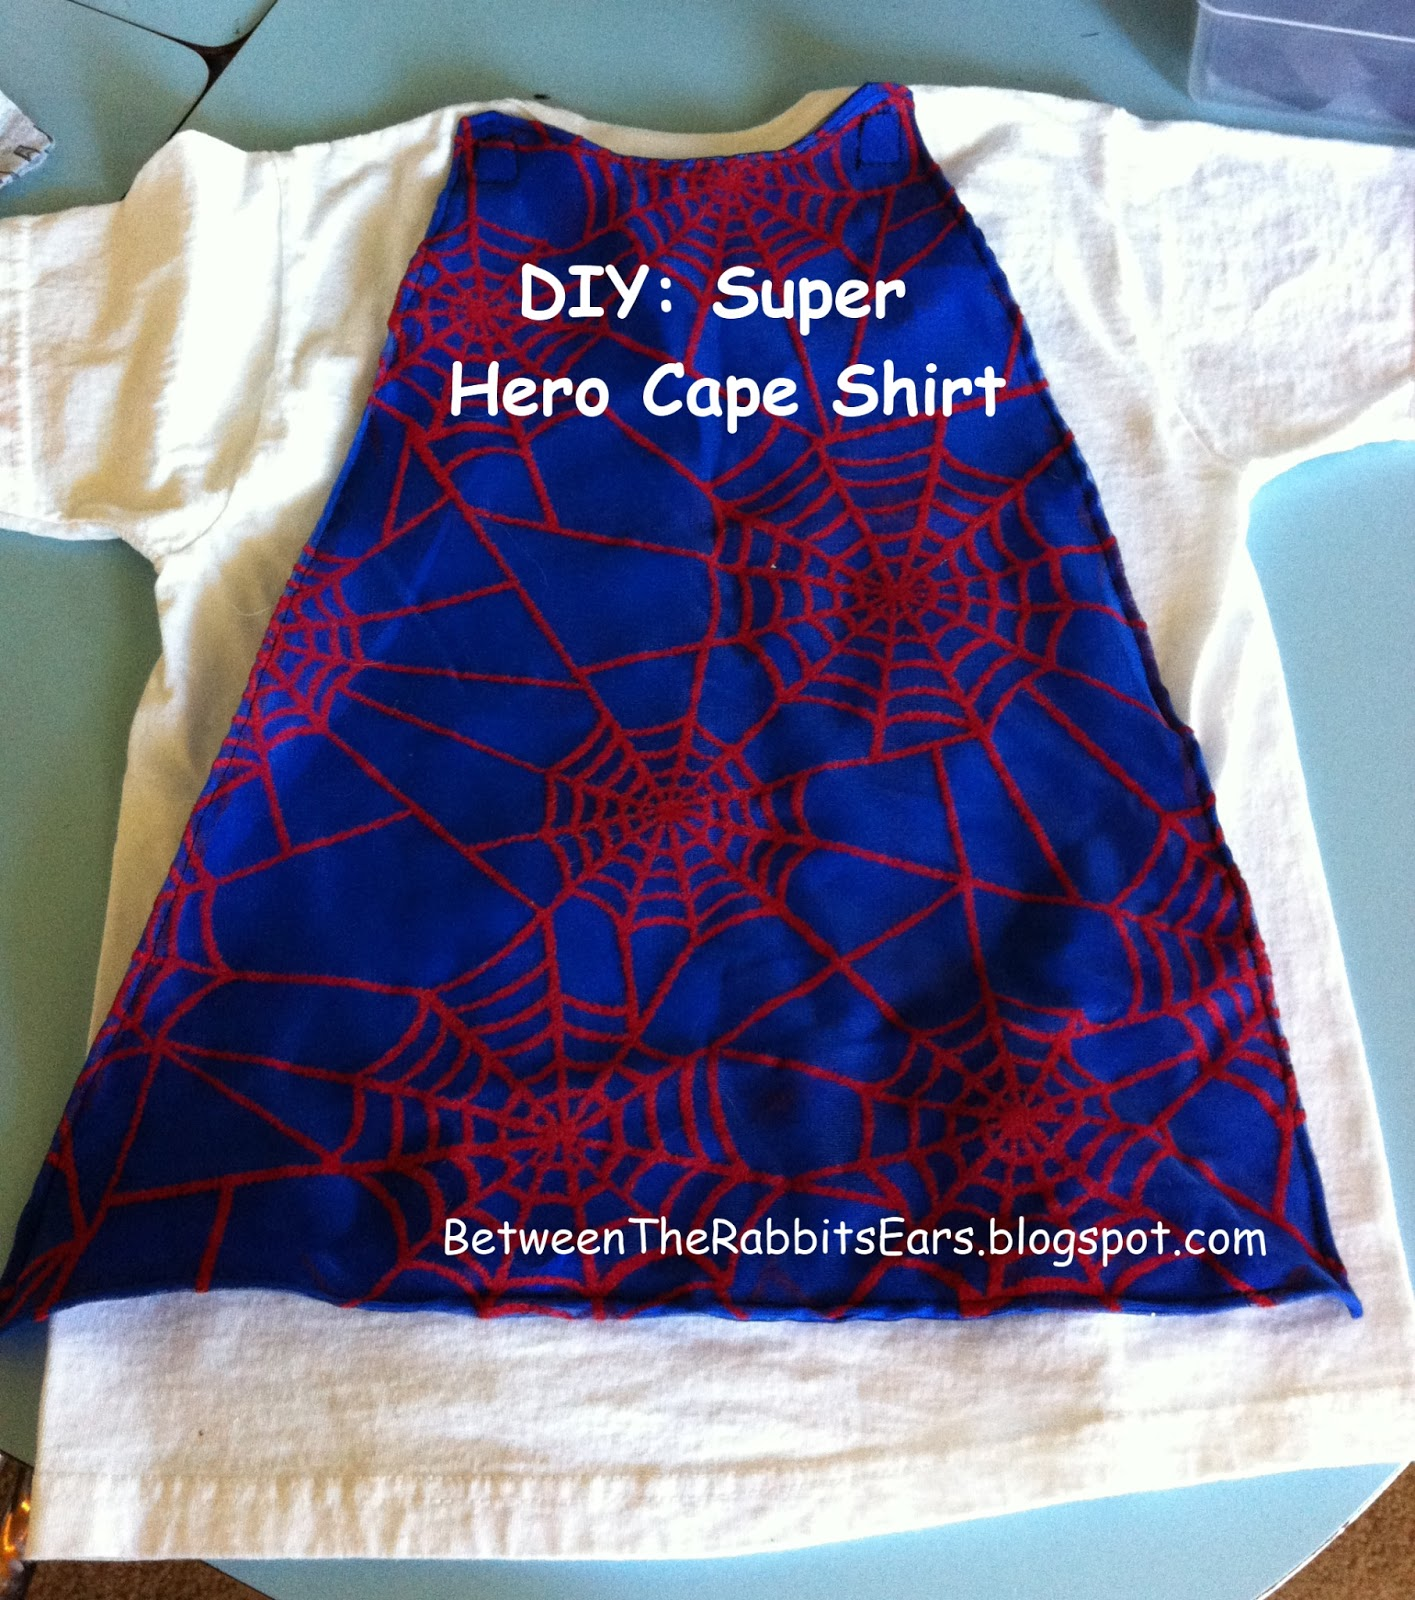 Target Work Shirts Between The Rabbit 39s Ears Diy Super Hero Cape Shirt